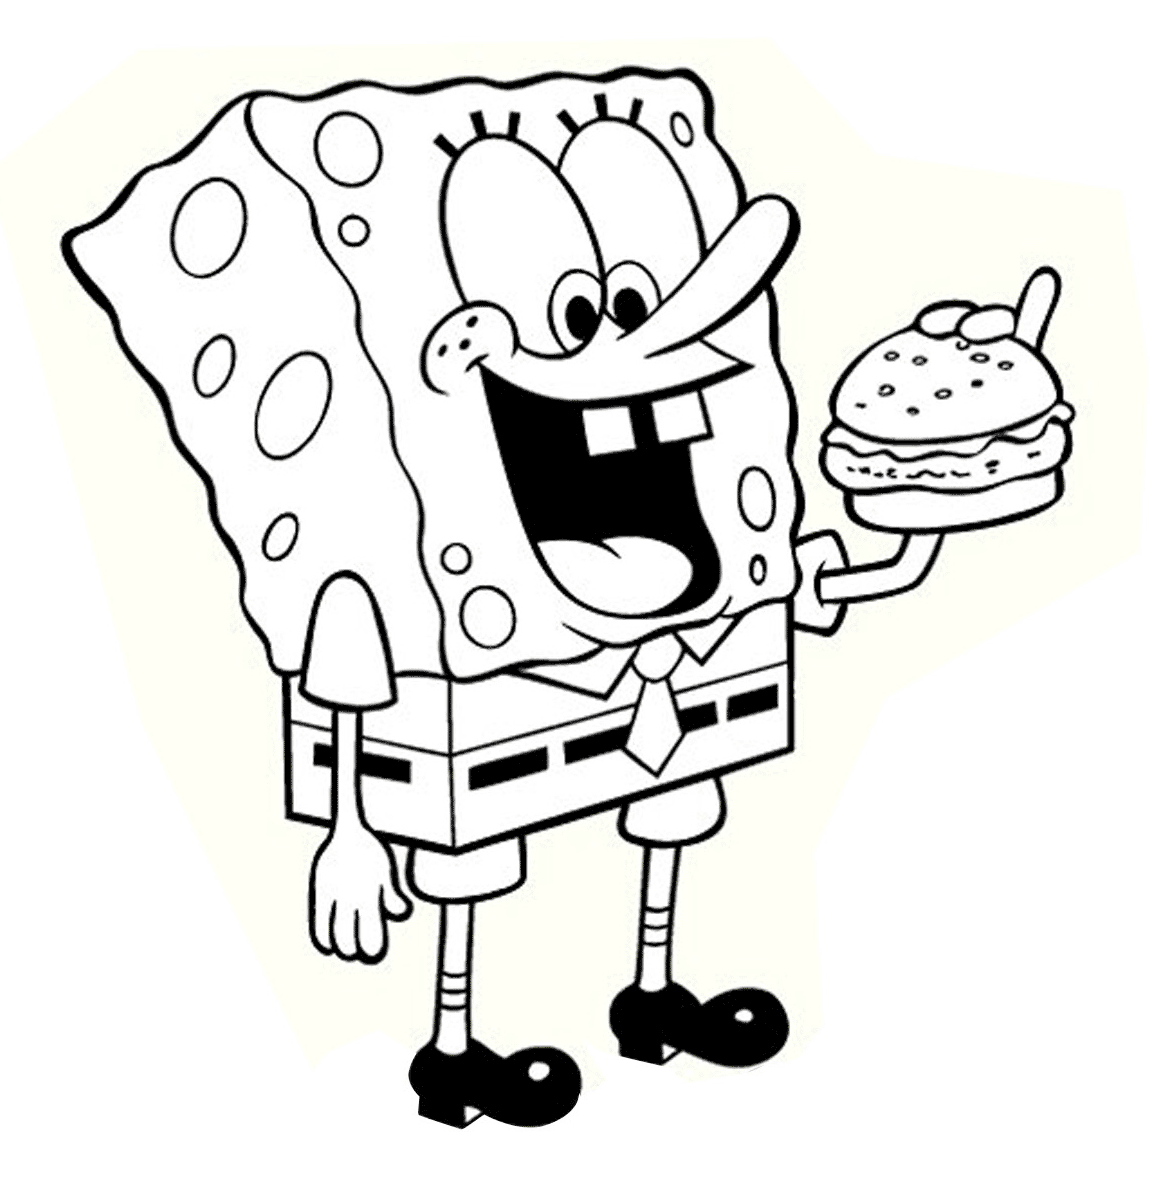 Best Spongebob Coloring Pages For Boys Free